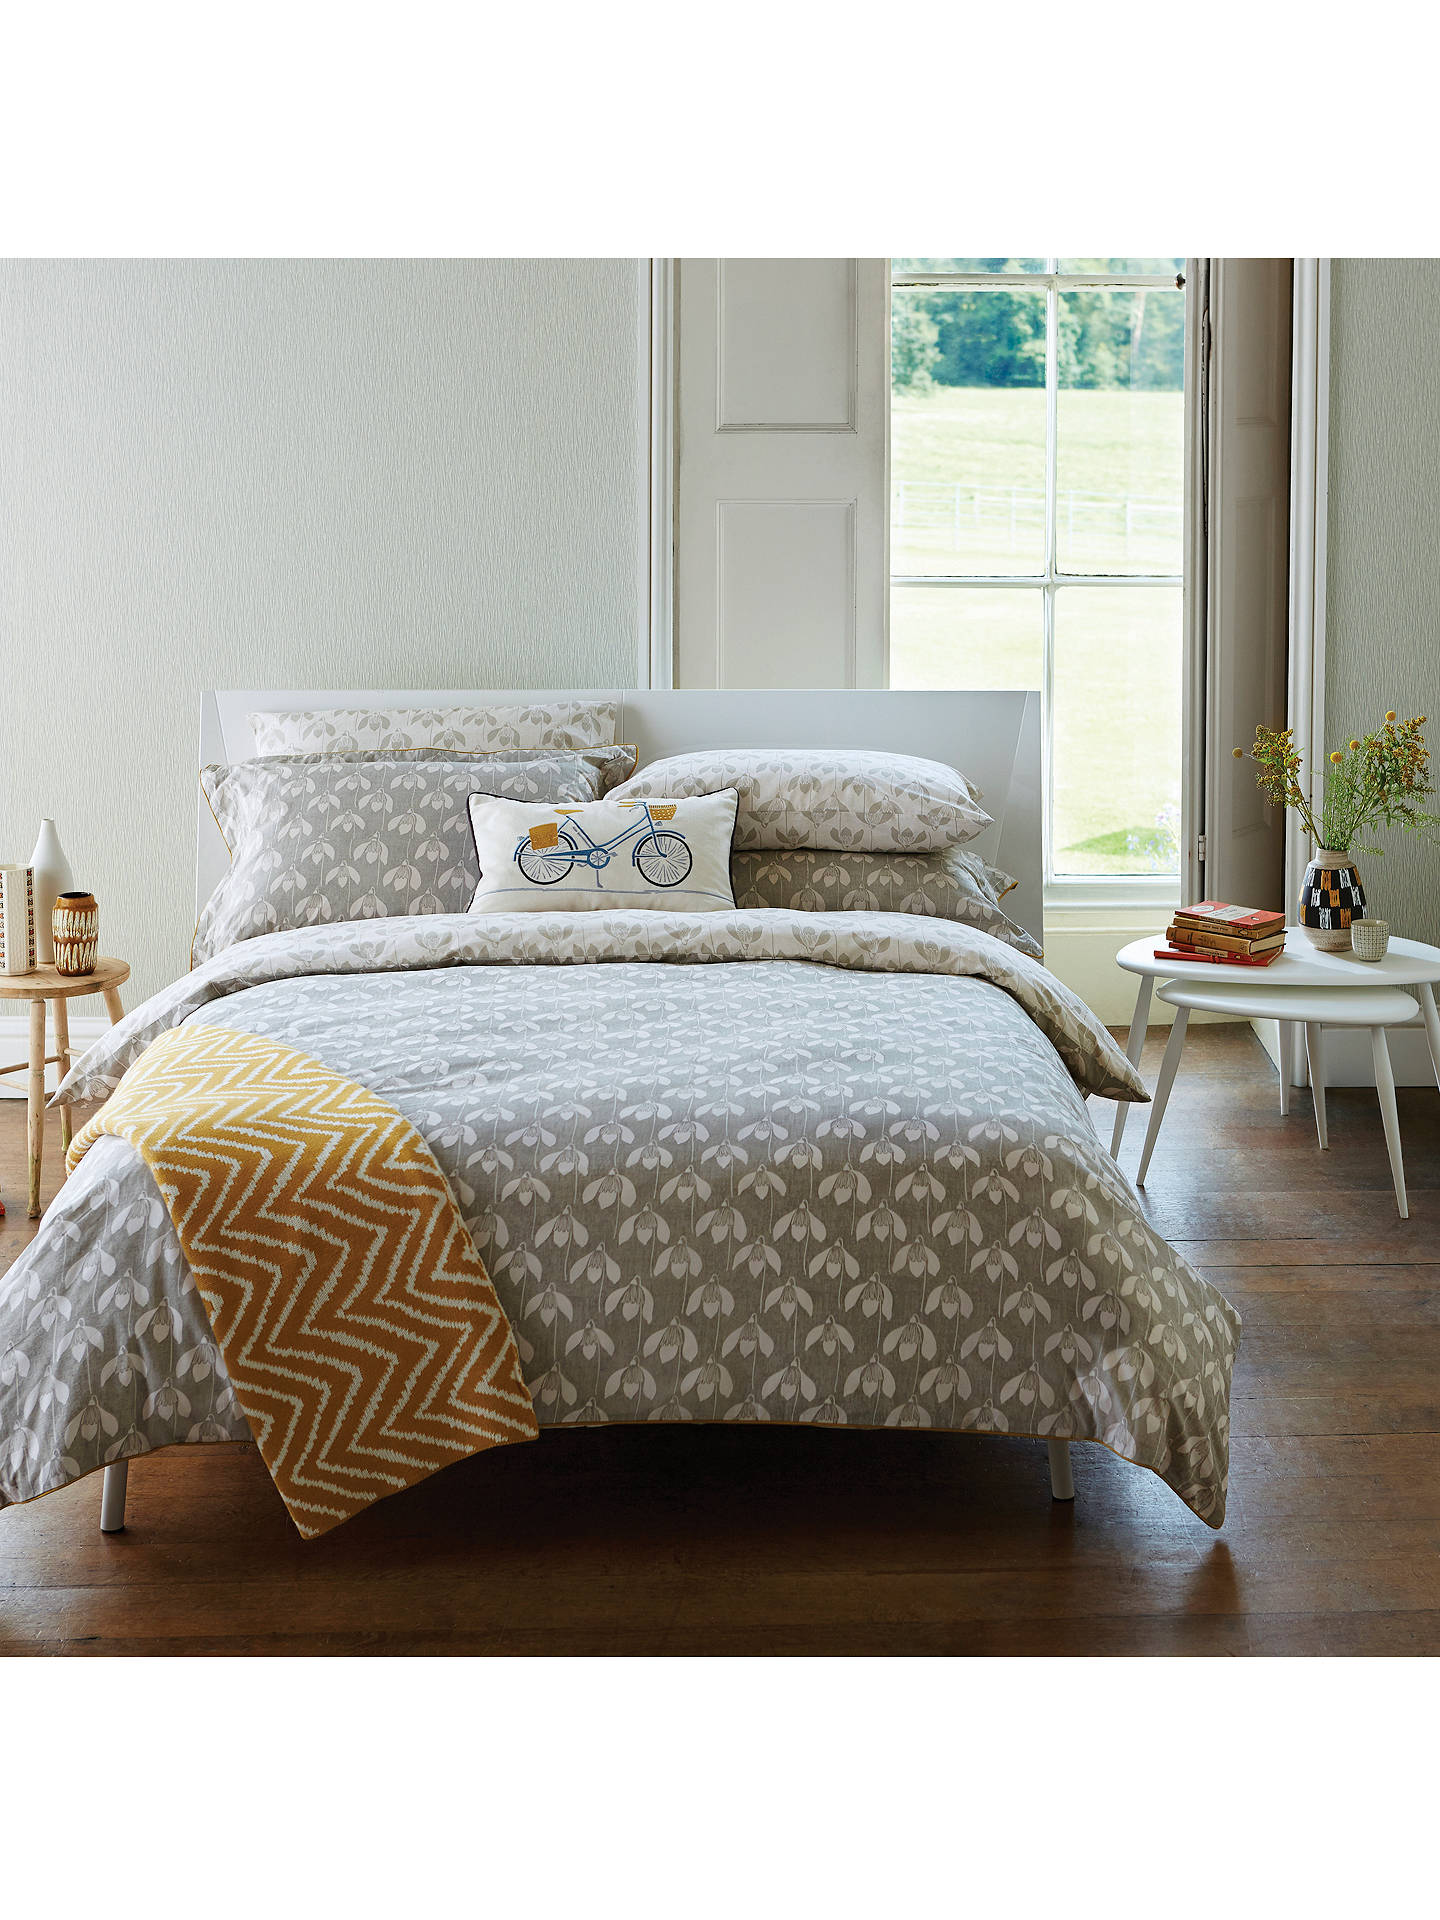 Buy Scion Snowdrop Duvet Cover, Super King Online at johnlewis.com